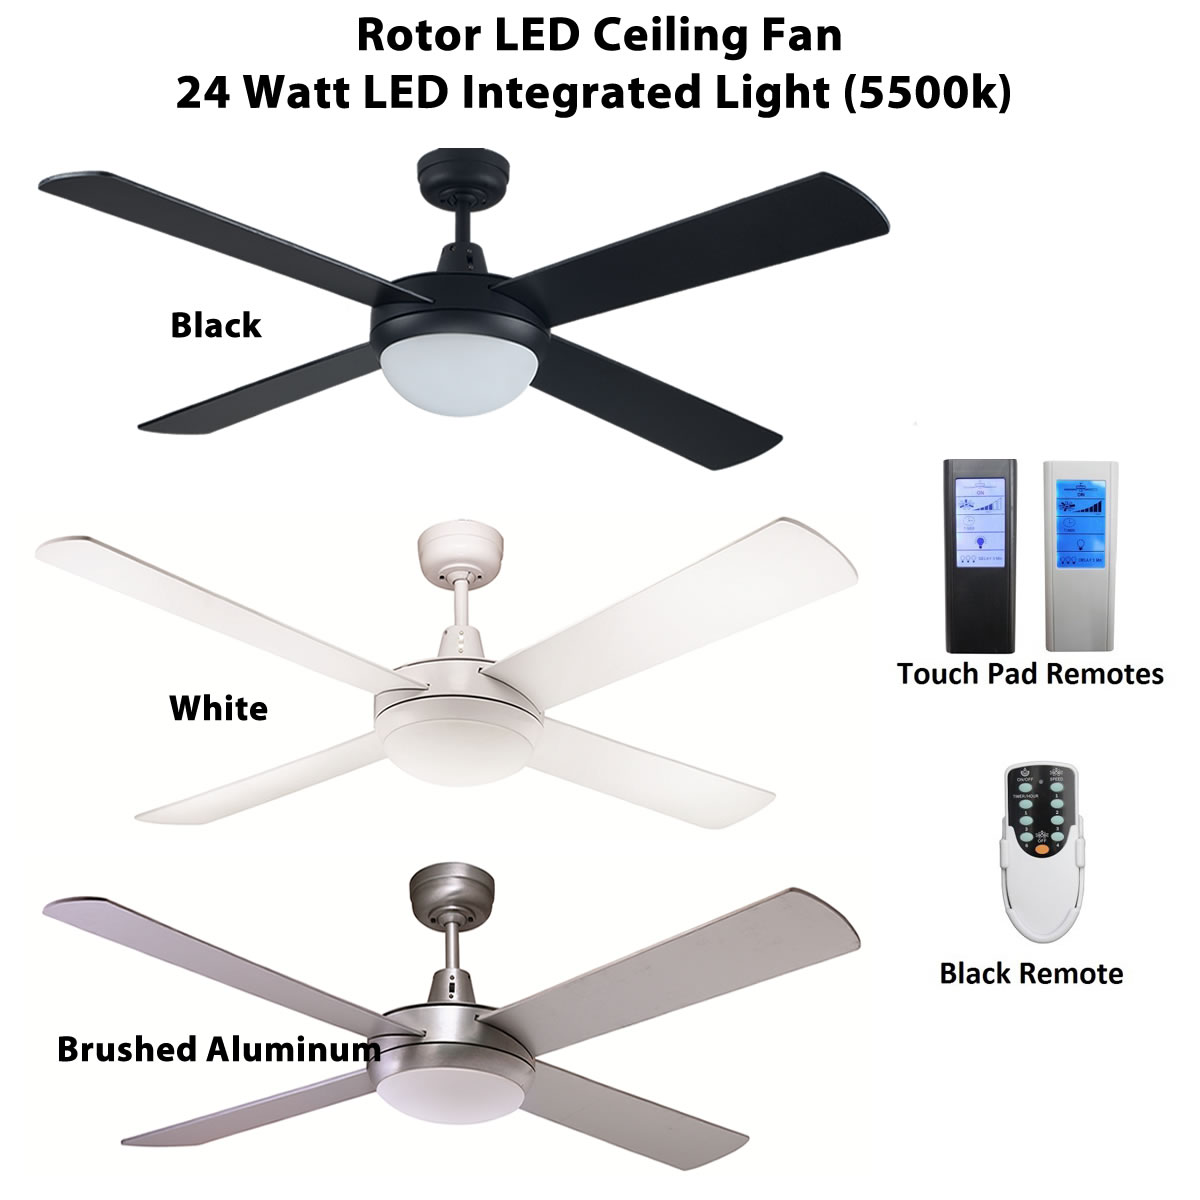 Rotor 52 inch led ceiling fan with 24w led light ceiling fan specials fias rotor led ceiling fan aloadofball Images